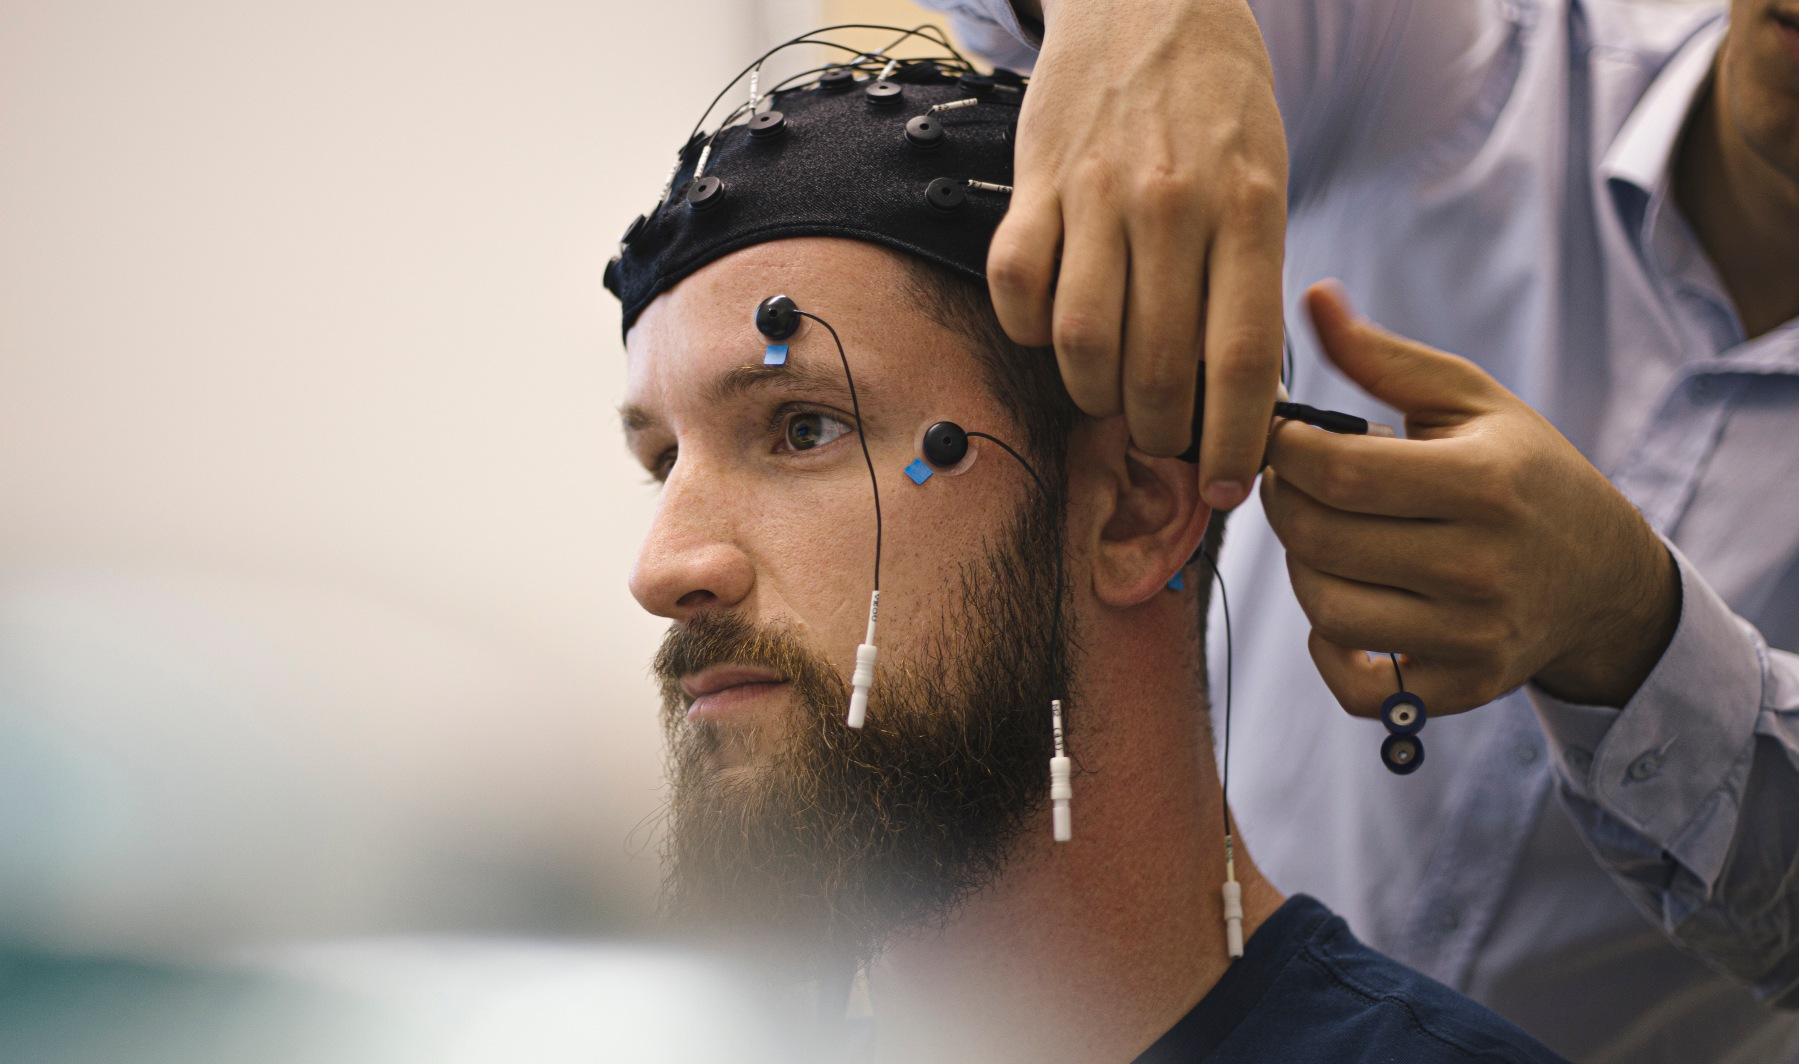 Closeup of a young, bearded man having electrodes hooked up to his head.